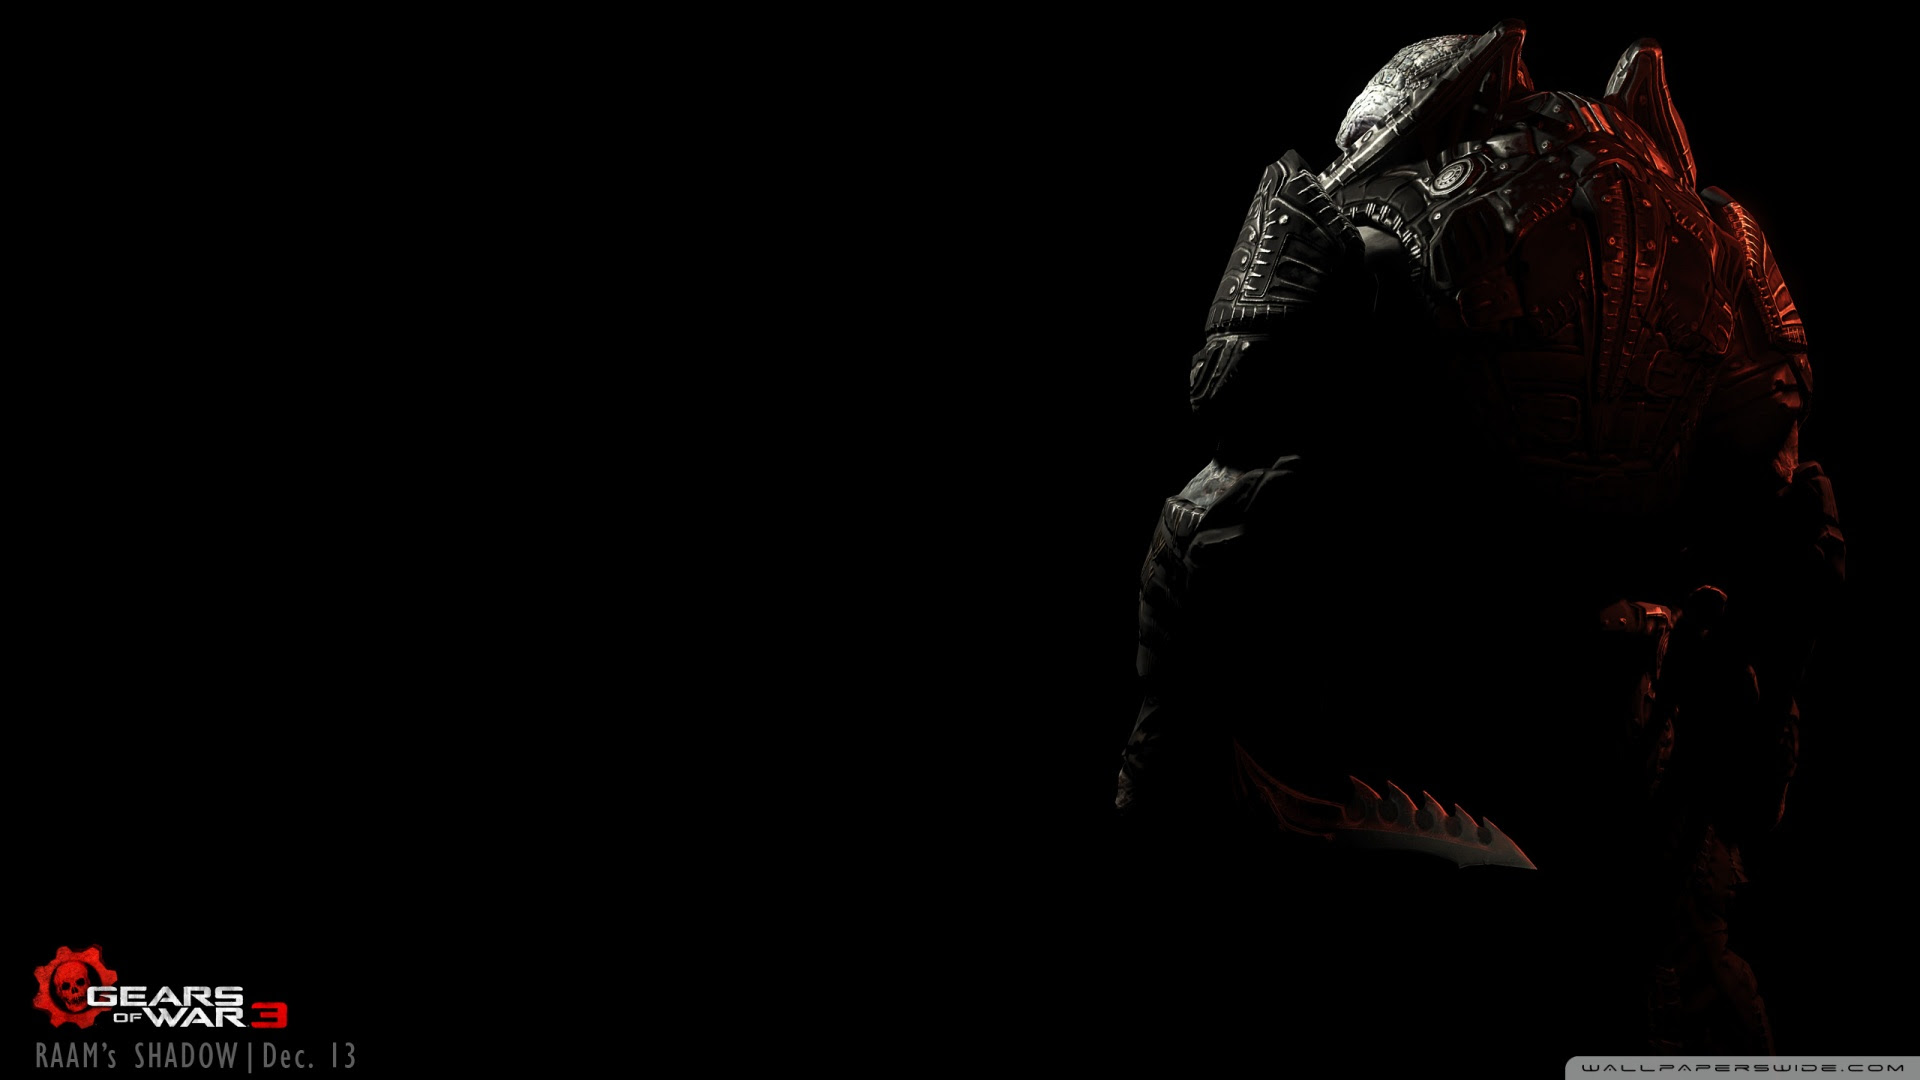 Gears Of War 3 Raam S Shadow Ultra Hd Desktop Background Wallpaper